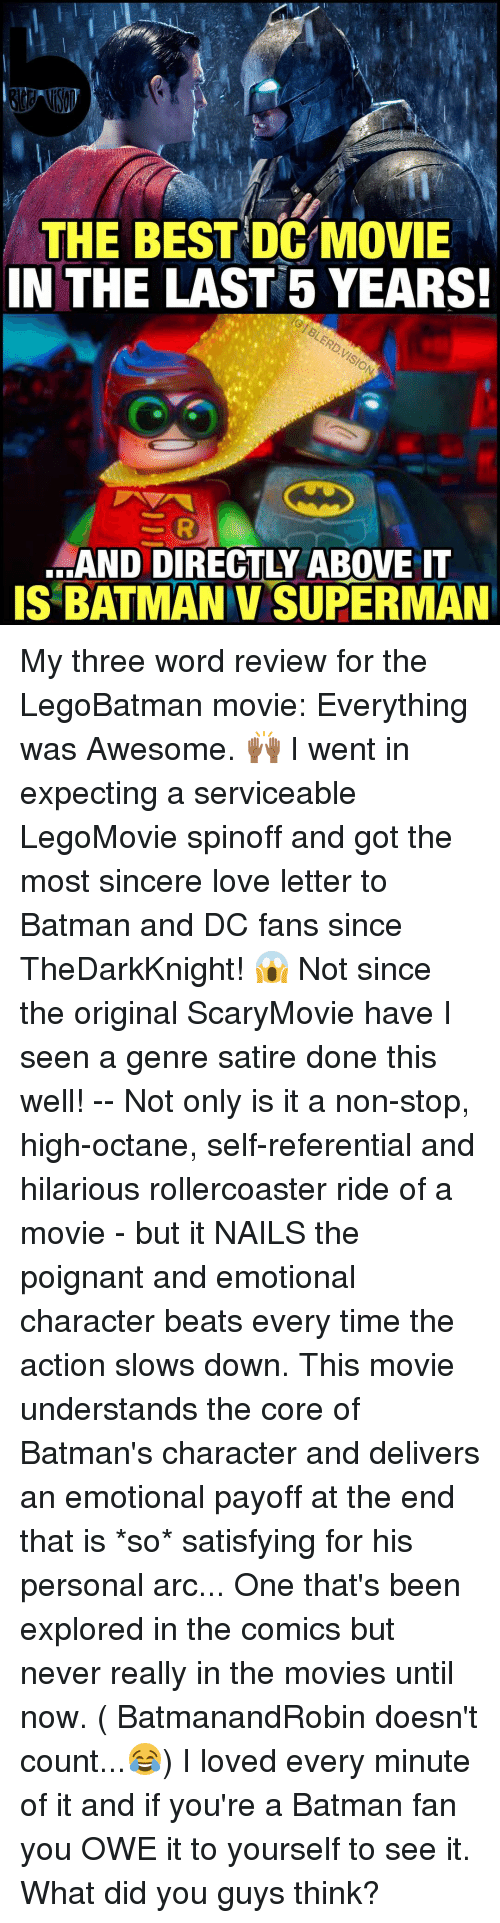 Octane: THE BEST DC MOVIE  IN THE LAST 5 YEARS!  SAND DIRECTLY ABOVE IT  IS BATMAN v SUPERMAN My three word review for the LegoBatman movie: Everything was Awesome. 🙌🏾 I went in expecting a serviceable LegoMovie spinoff and got the most sincere love letter to Batman and DC fans since TheDarkKnight! 😱 Not since the original ScaryMovie have I seen a genre satire done this well! -- Not only is it a non-stop, high-octane, self-referential and hilarious rollercoaster ride of a movie - but it NAILS the poignant and emotional character beats every time the action slows down. This movie understands the core of Batman's character and delivers an emotional payoff at the end that is *so* satisfying for his personal arc... One that's been explored in the comics but never really in the movies until now. ( BatmanandRobin doesn't count...😂) I loved every minute of it and if you're a Batman fan you OWE it to yourself to see it. What did you guys think?